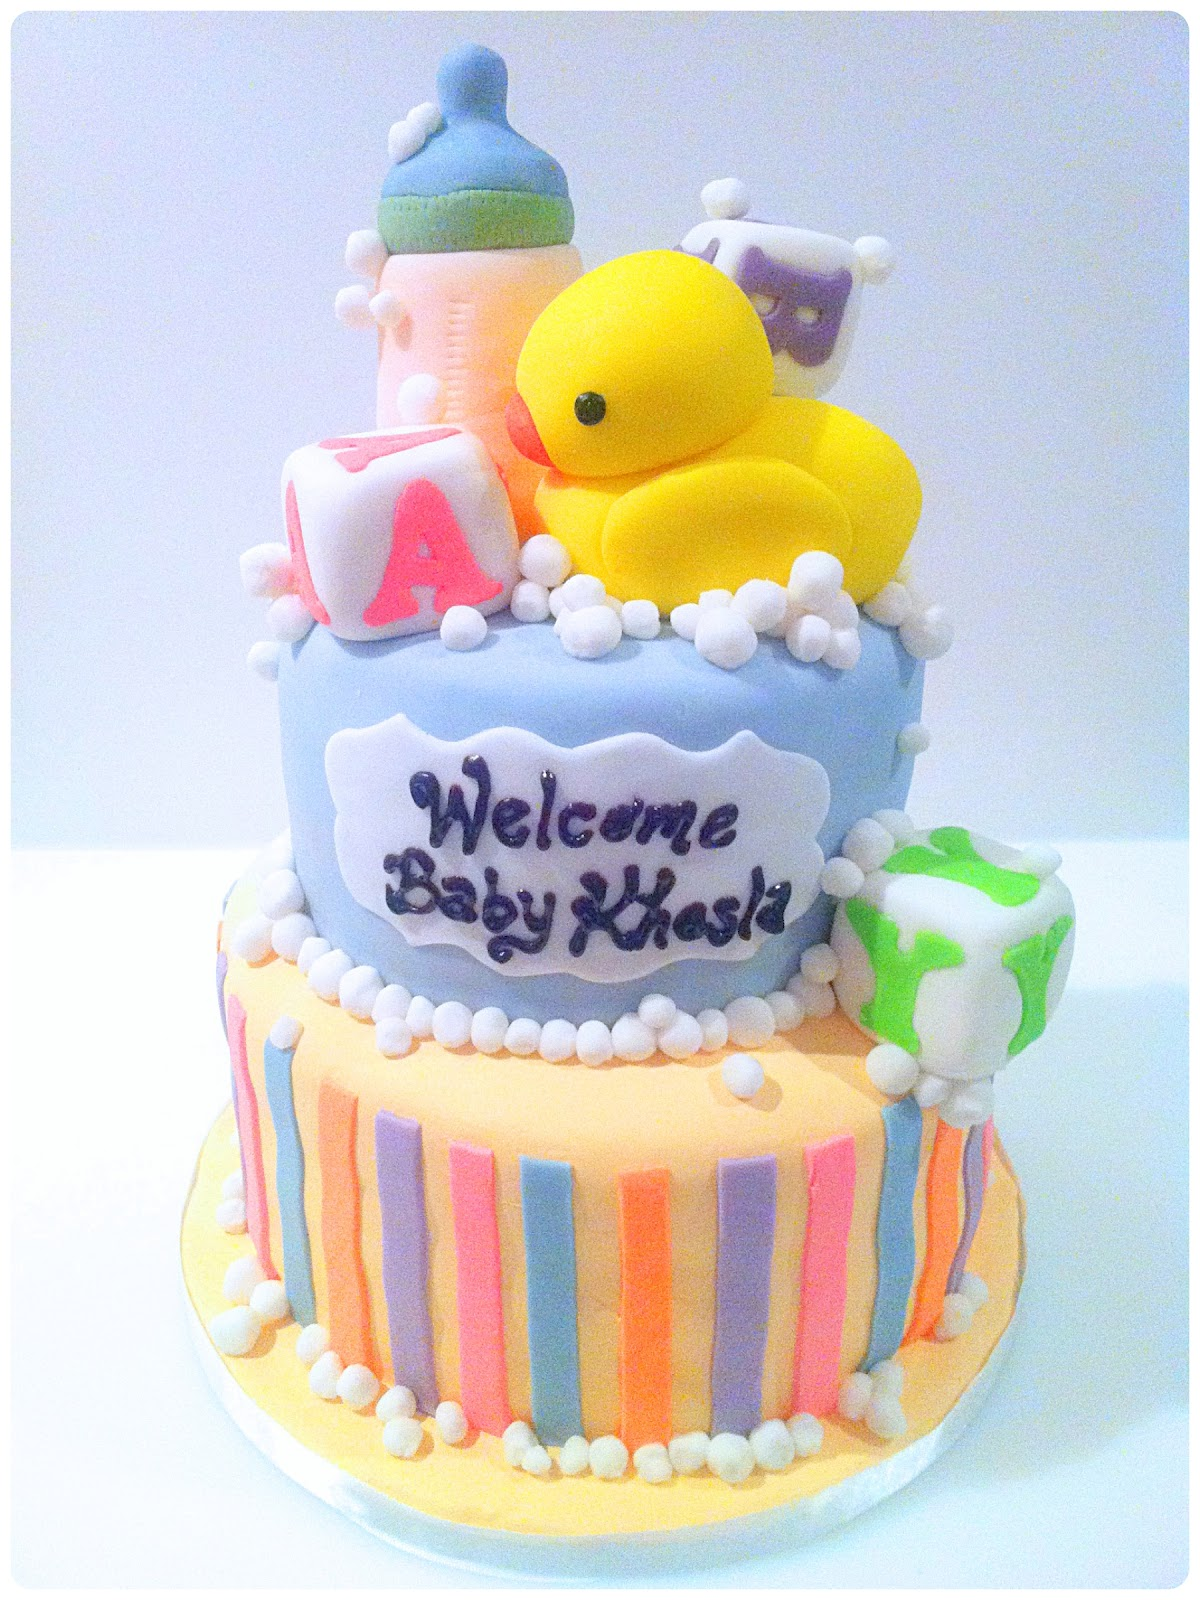 Welcome baby home cake ch rie kelly for Welcome home decorations for baby